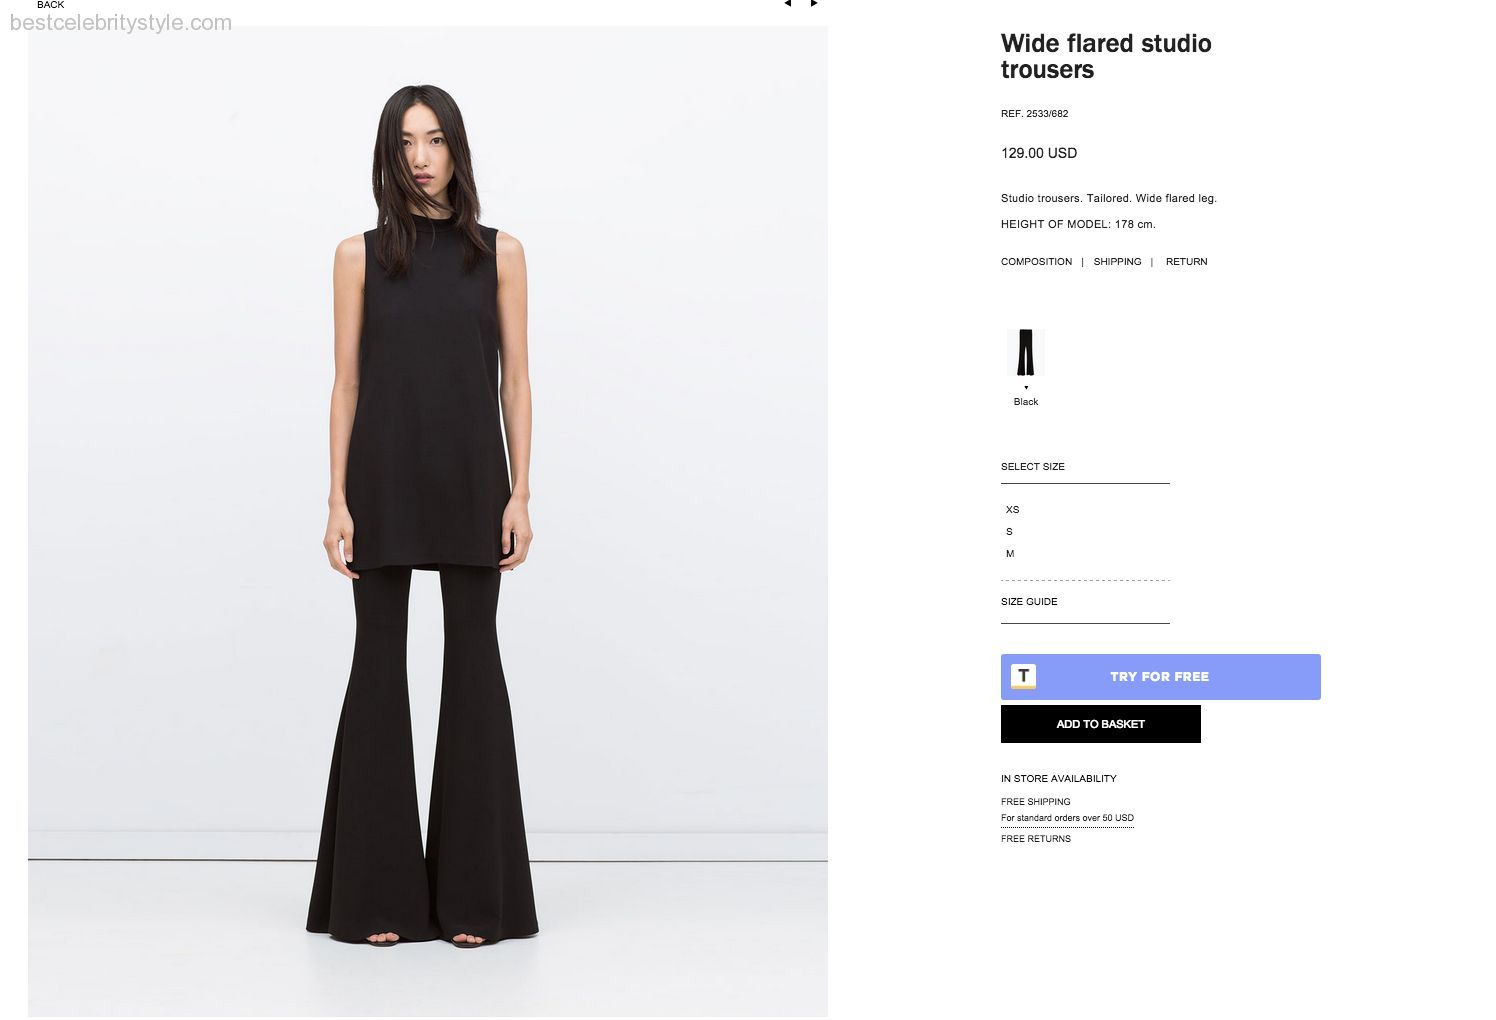 Genius: This New Website Lets You Try on Clothing From Online Stores—Without Paying First - http://bestcelebritystyle.com/genius-this-new-website-lets-you-try-on-clothing-from-online-storeswithout-paying-first/